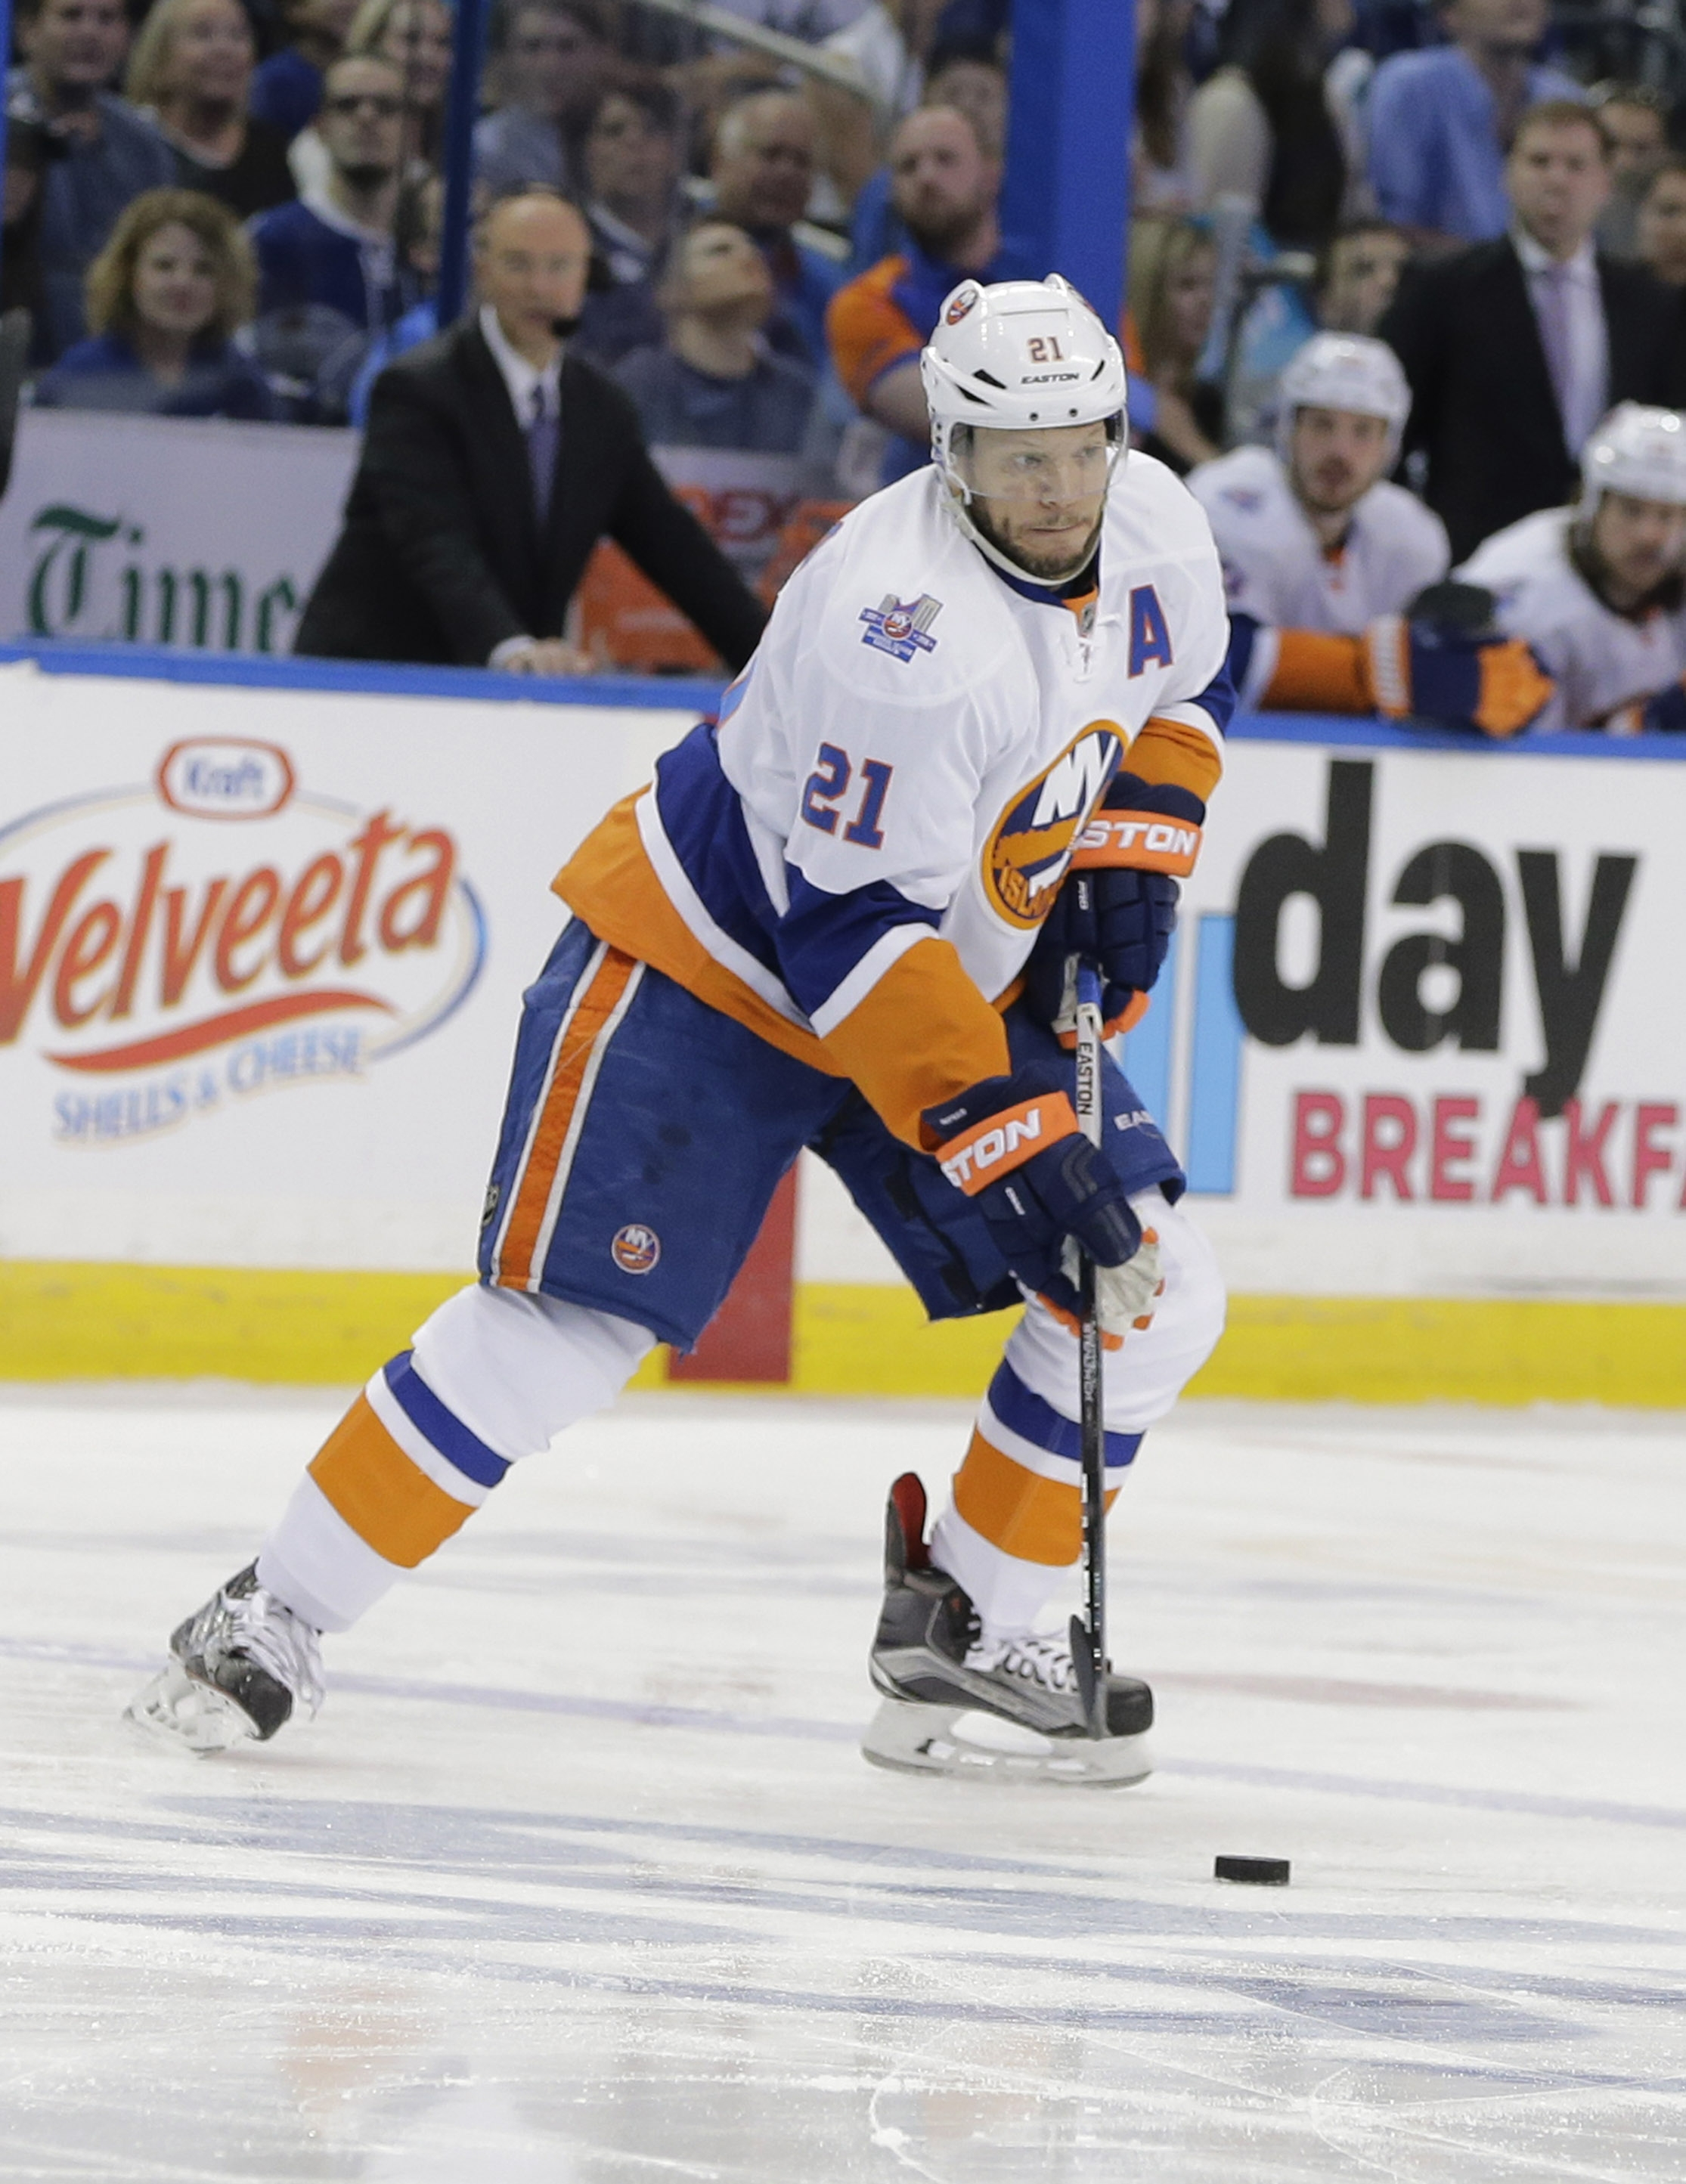 New York Islanders right wing Kyle Okposo (21) controls the puck during the first period of Game 5 of the NHL hockey Stanley Cup Eastern Conference semifinals  against the New York Islanders, Sunday, May 8, 2016, in Tampa, Fla. (AP Photo/Chris O'Meara)